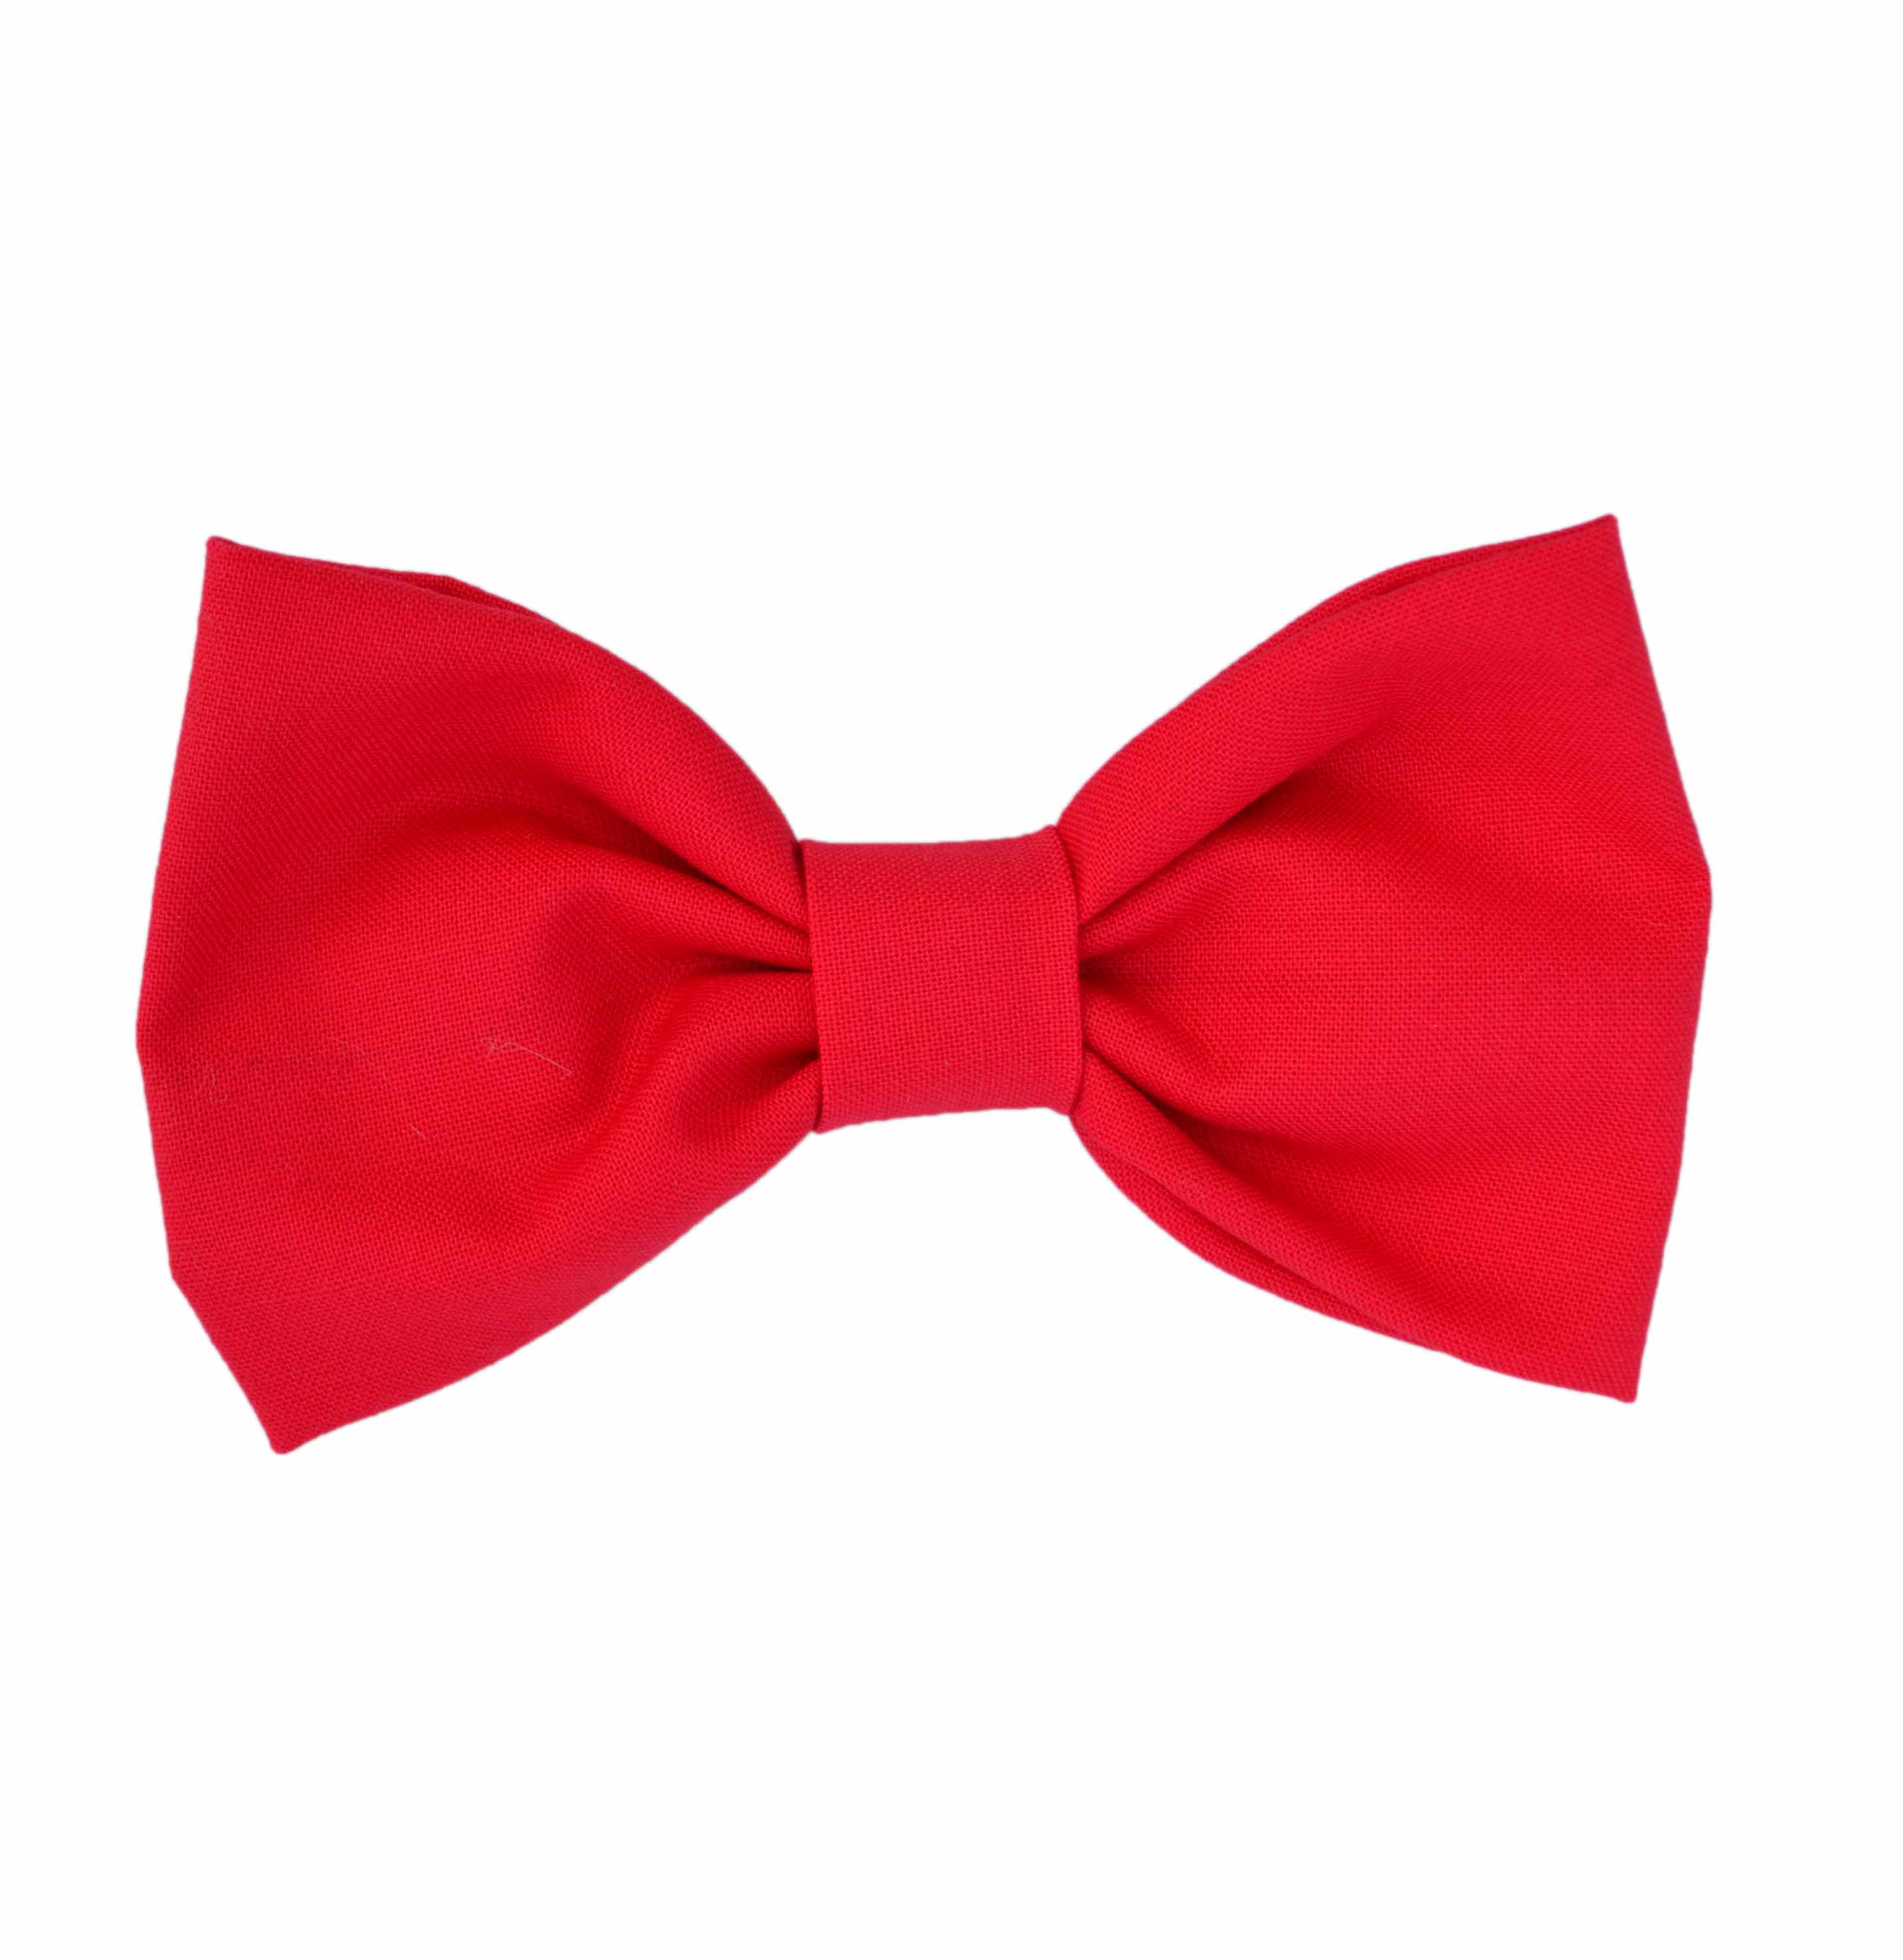 Bow Tie Png ClipArt Best.